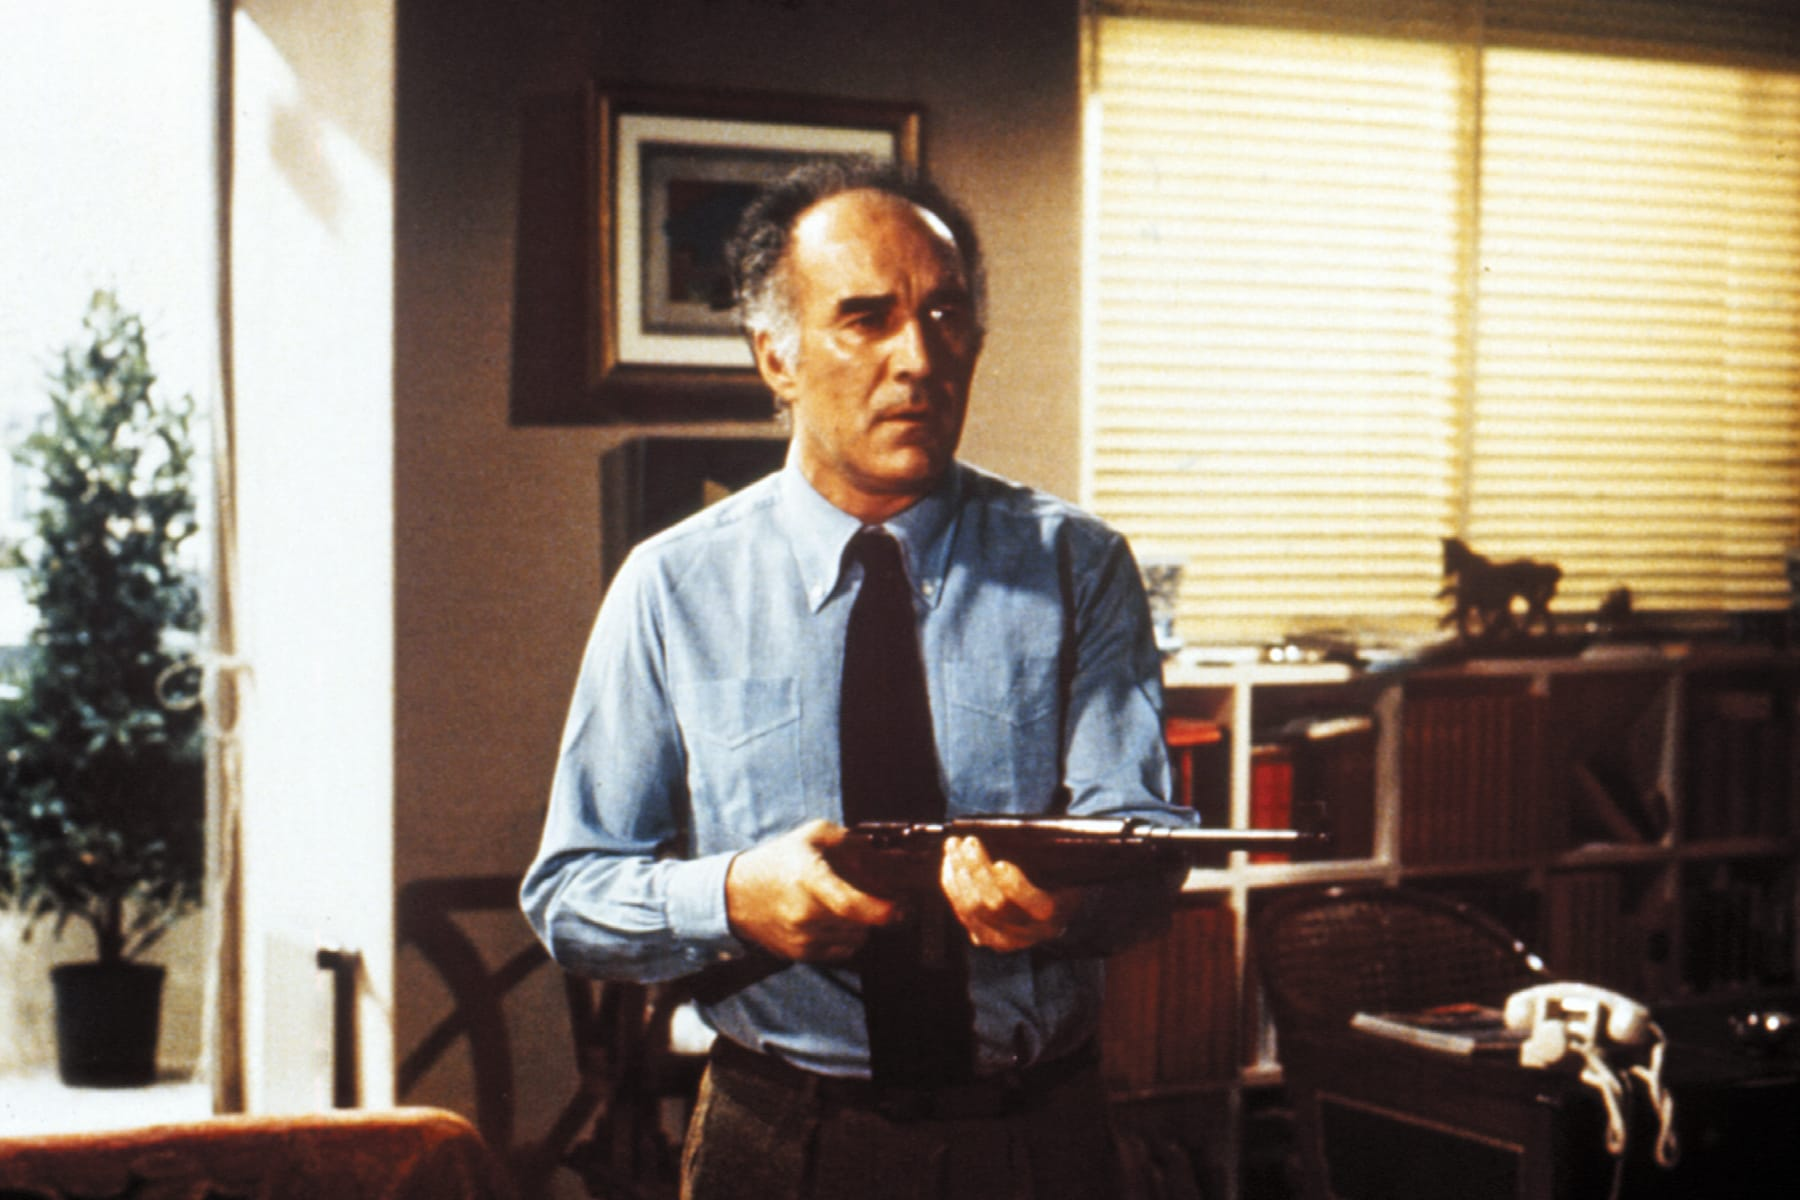 michel piccoli image Sept morts sur ordonnance